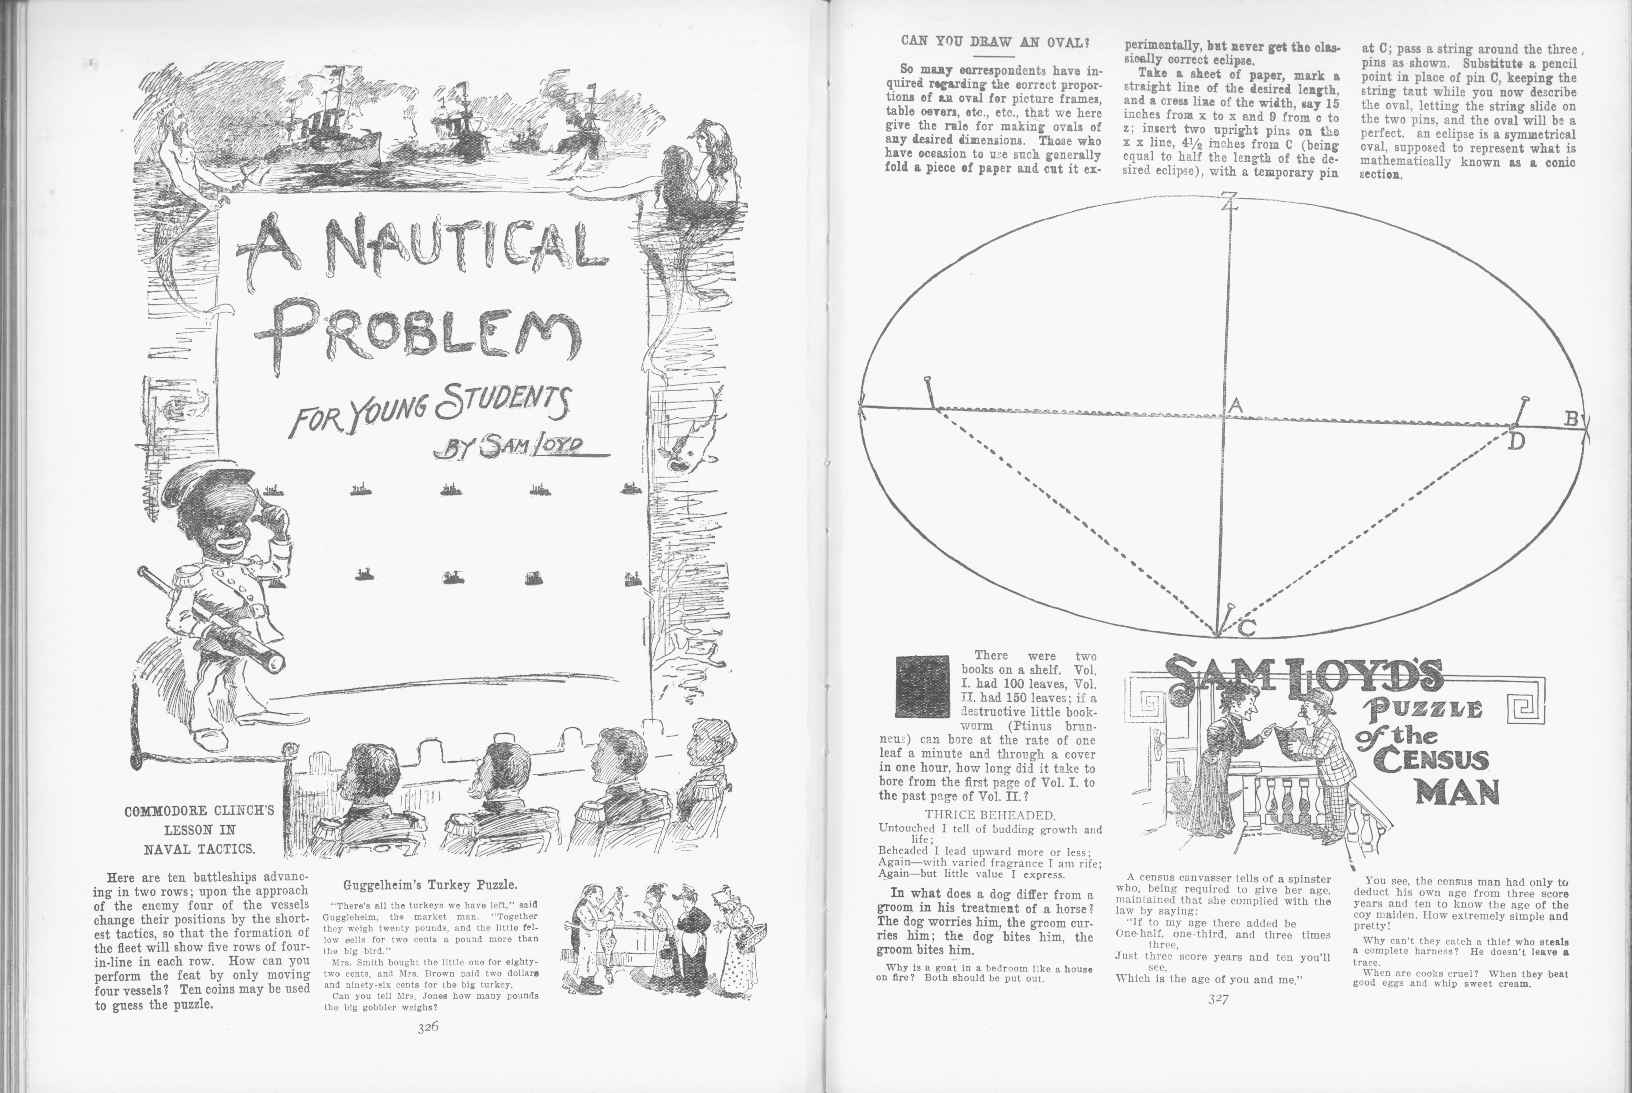 Sam Loyd - Cyclopedia of Puzzles - page 326-327